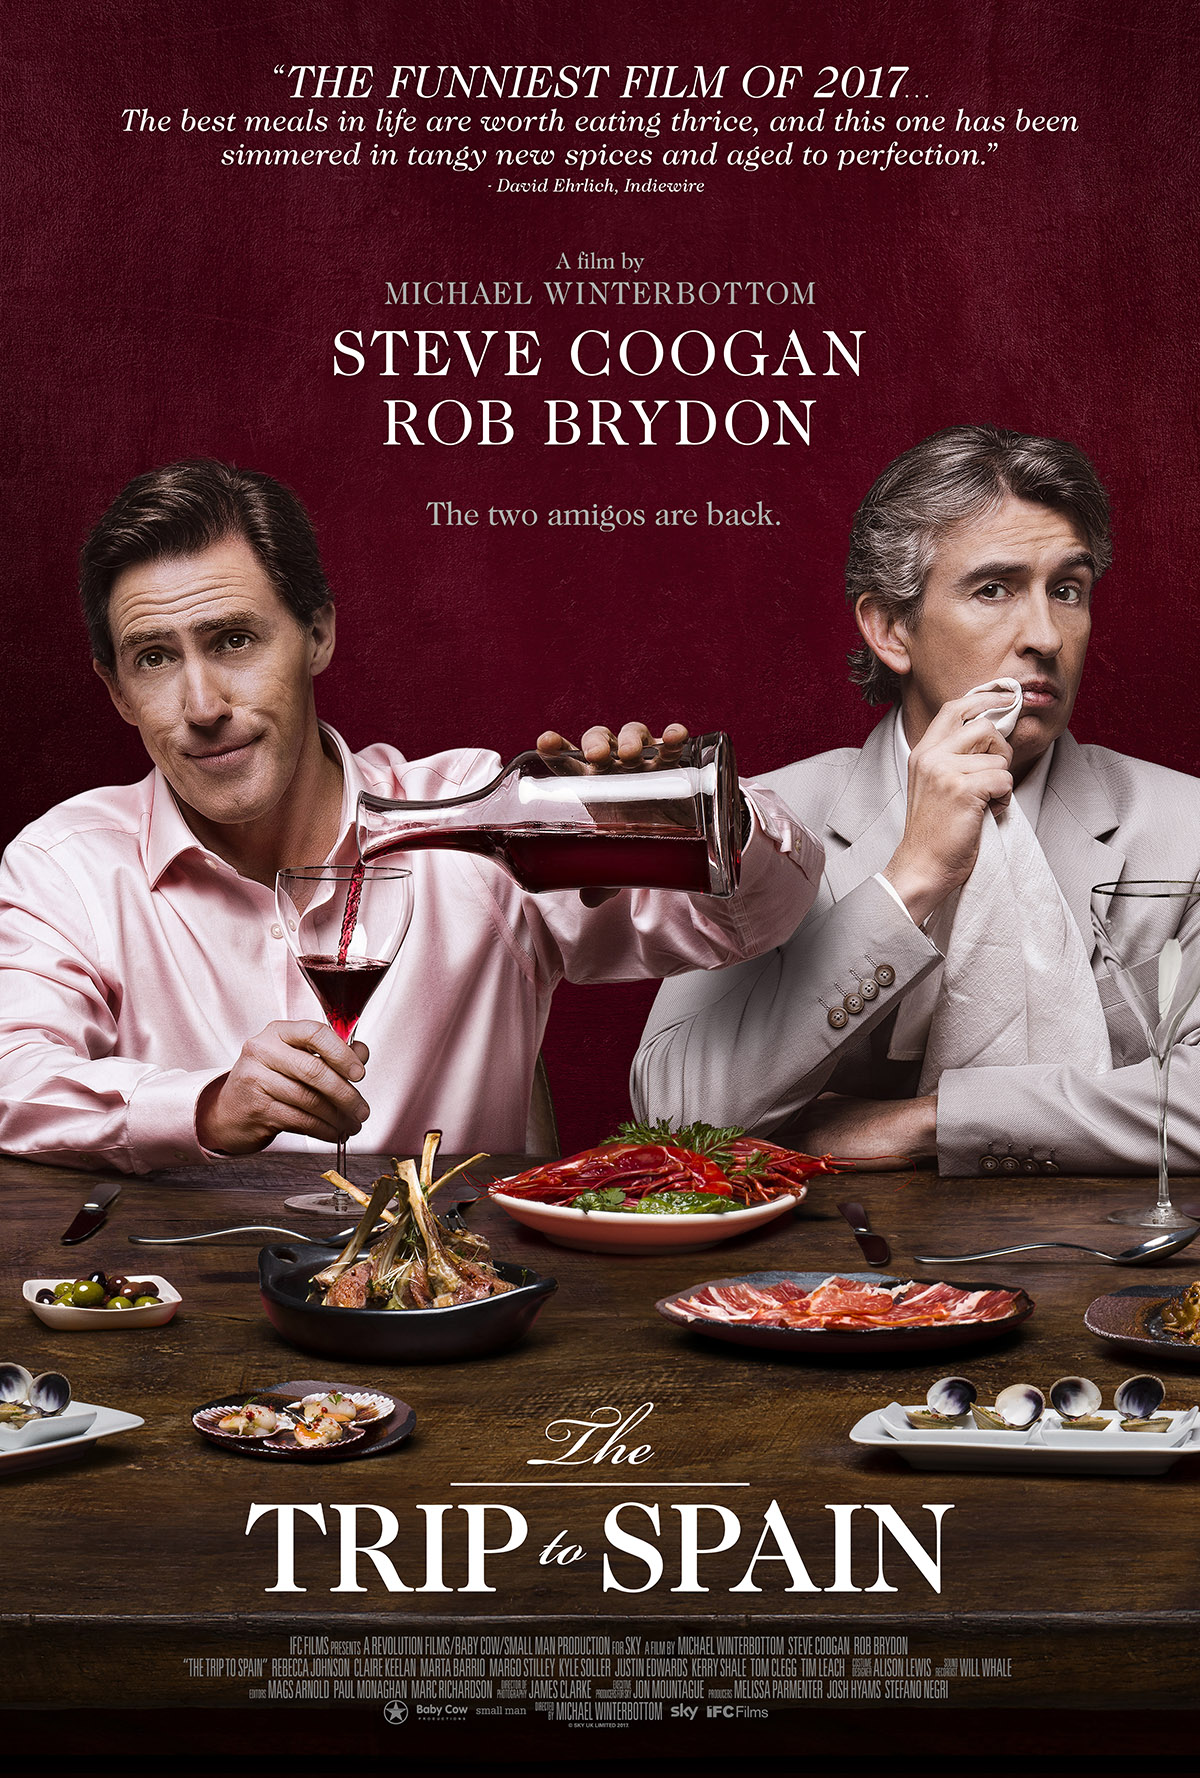 The Trip to Spain (2017) - Directed by: Michael WinterbottomStarring: Steve Coogan, Rob BrydonRated: Running Time: 1 h 48 mTMM Score: 3.5 stars out of 5STRENGTHS: Humor, Cinematography, 'Writing'WEAKNESSES: Pacing, Some Jokes/Gags